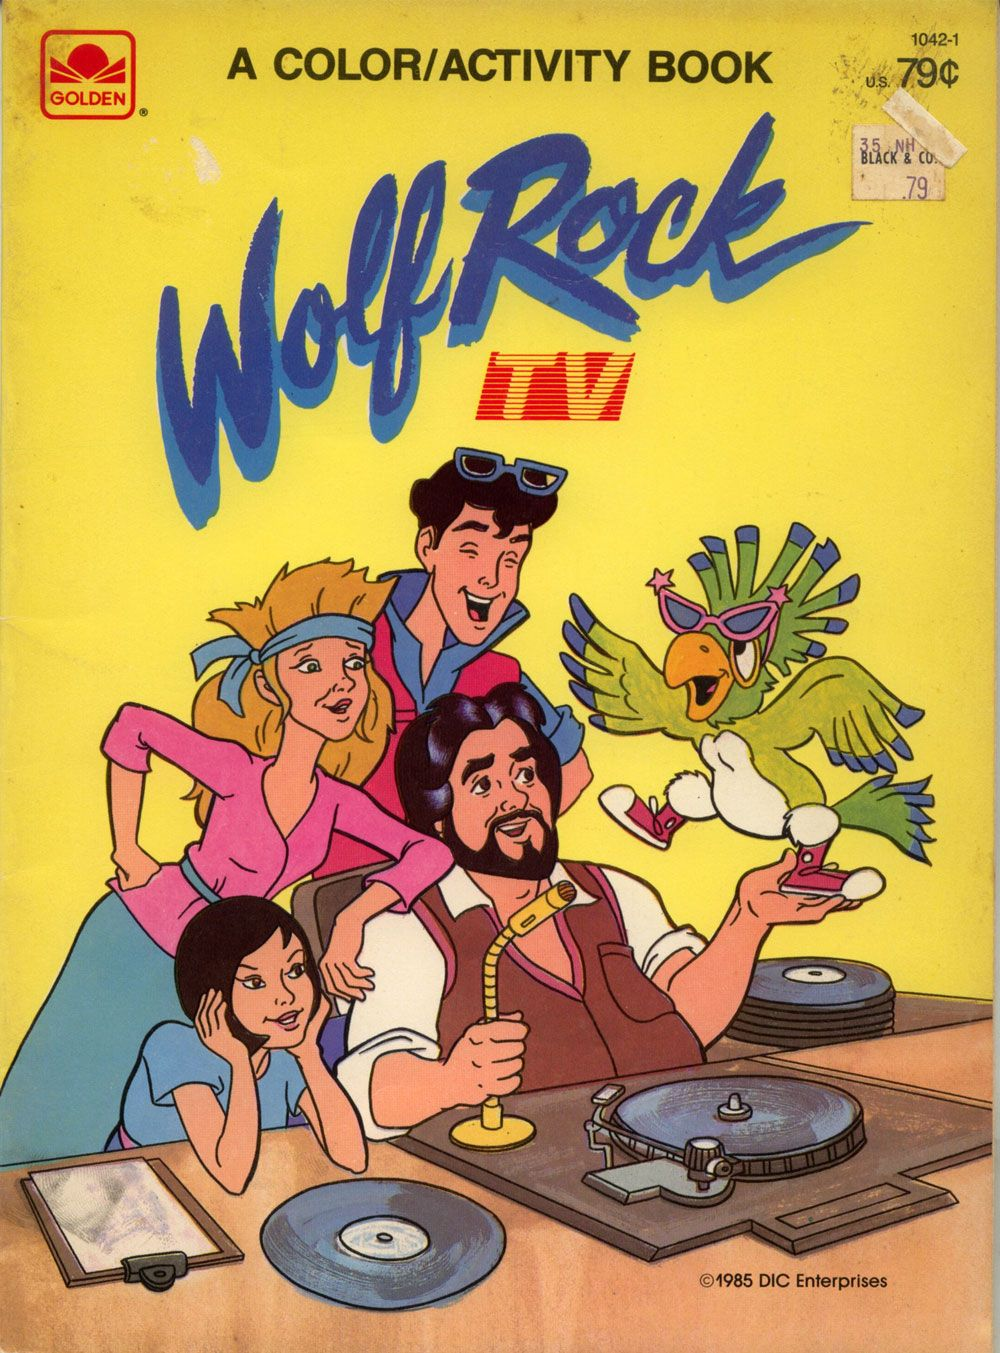 Wolfman Jack starring in his own cartoon! A crazy batch of teenagers ...